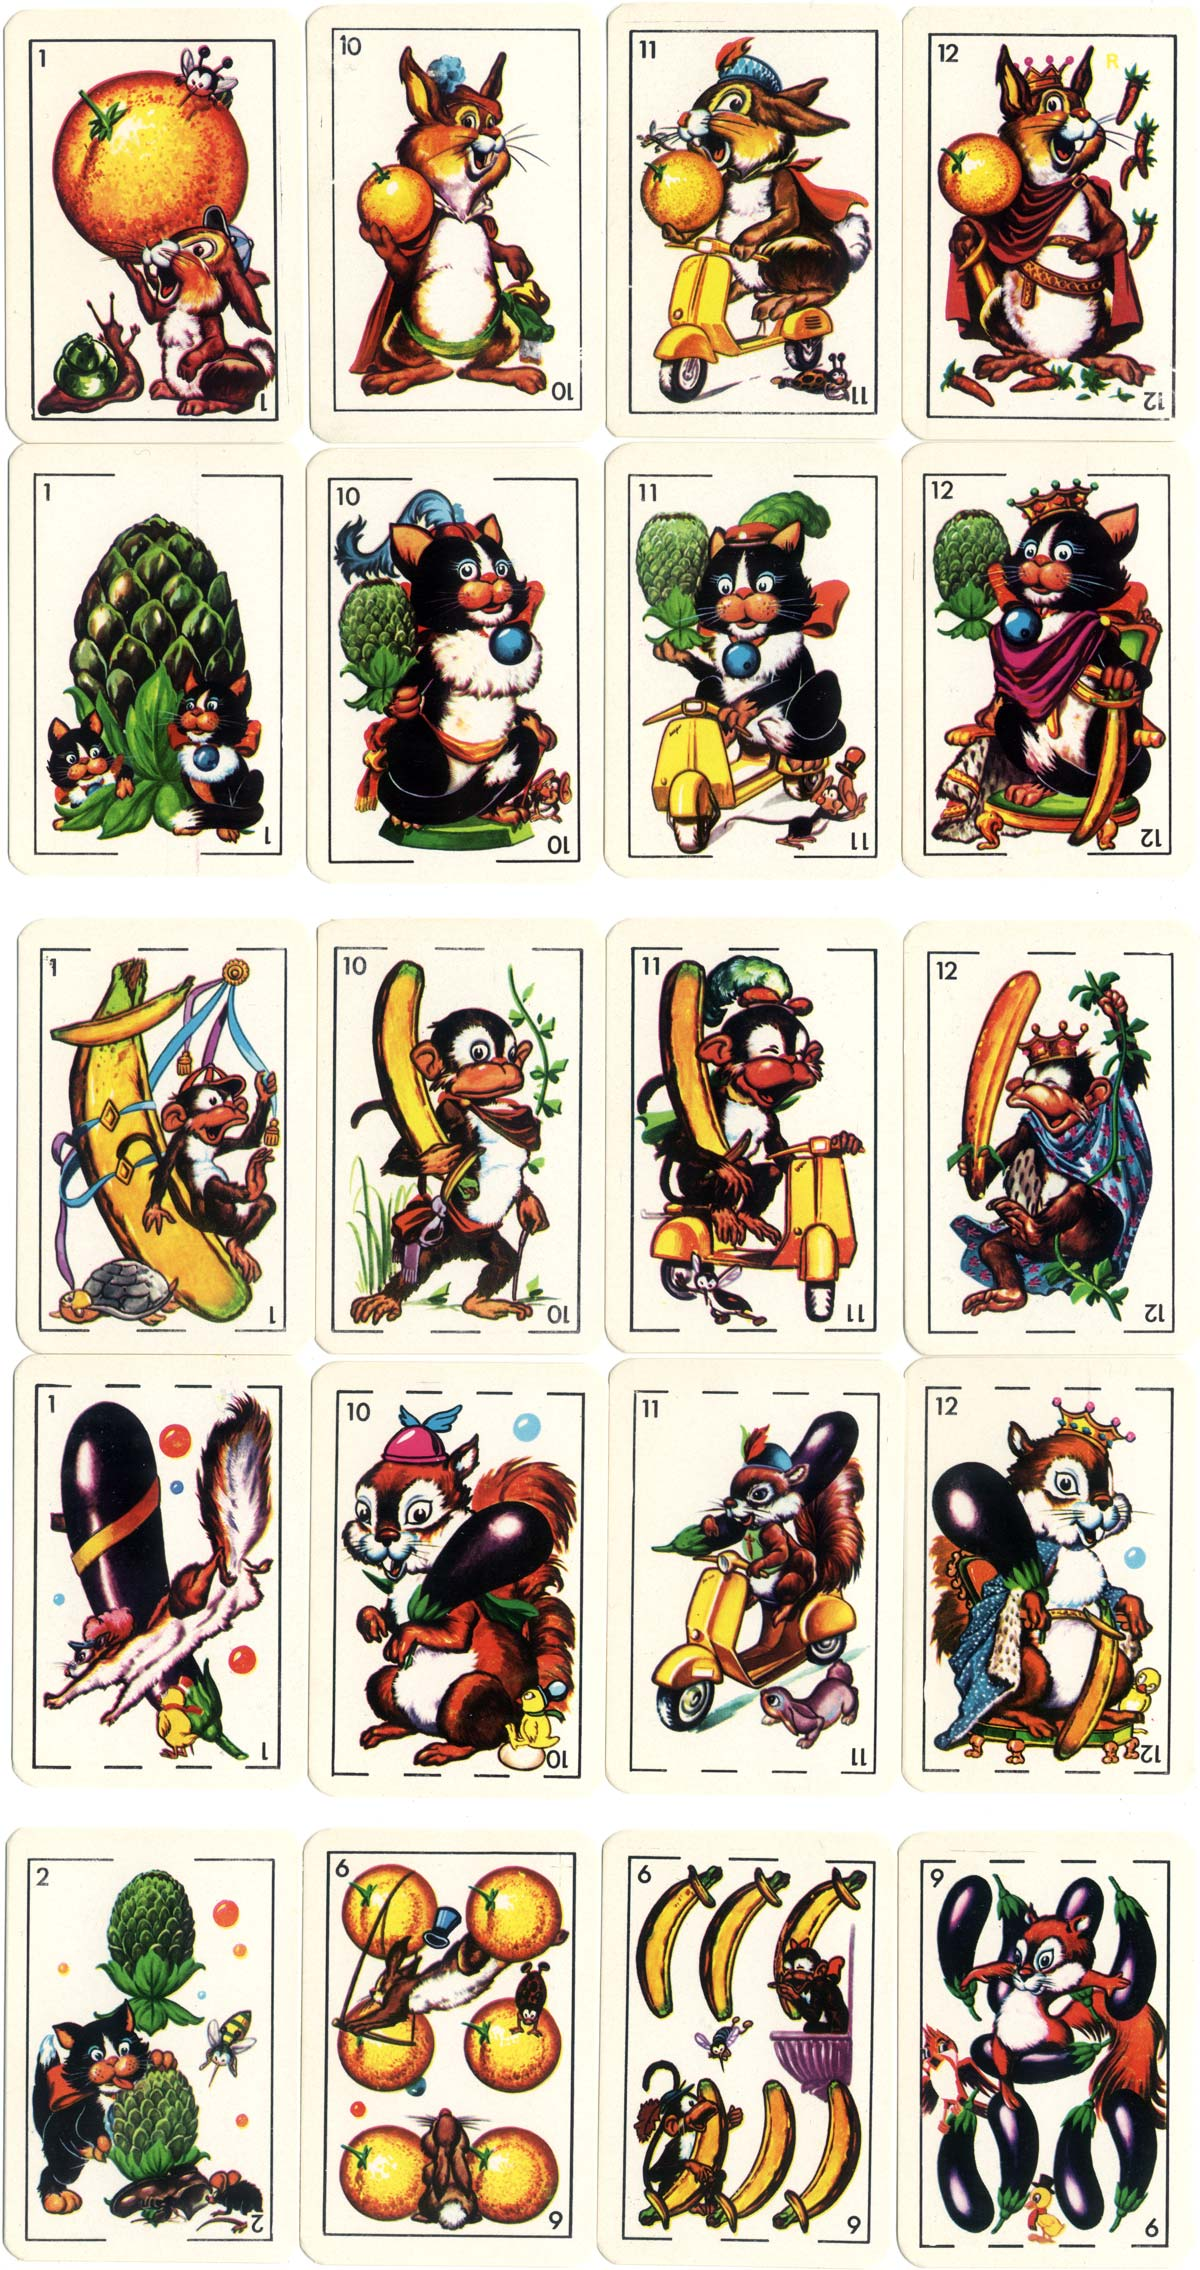 Zoo Comics animated playing cards by Litografia Ferri, 1968